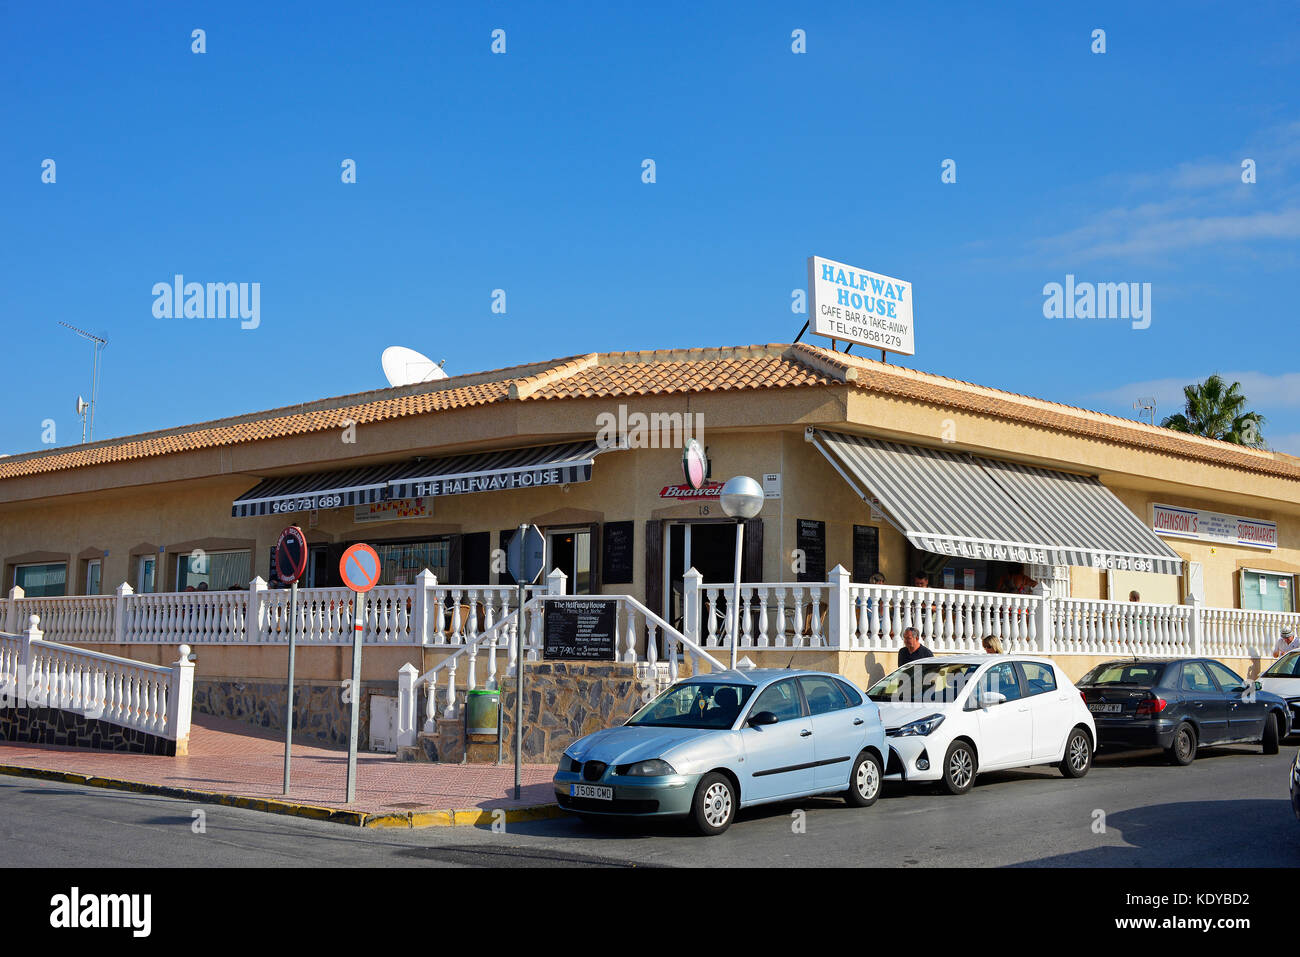 Halfway House restaurant cafe bar and take away in Ciudad Quesada, Rojales, Spain. - Stock Image